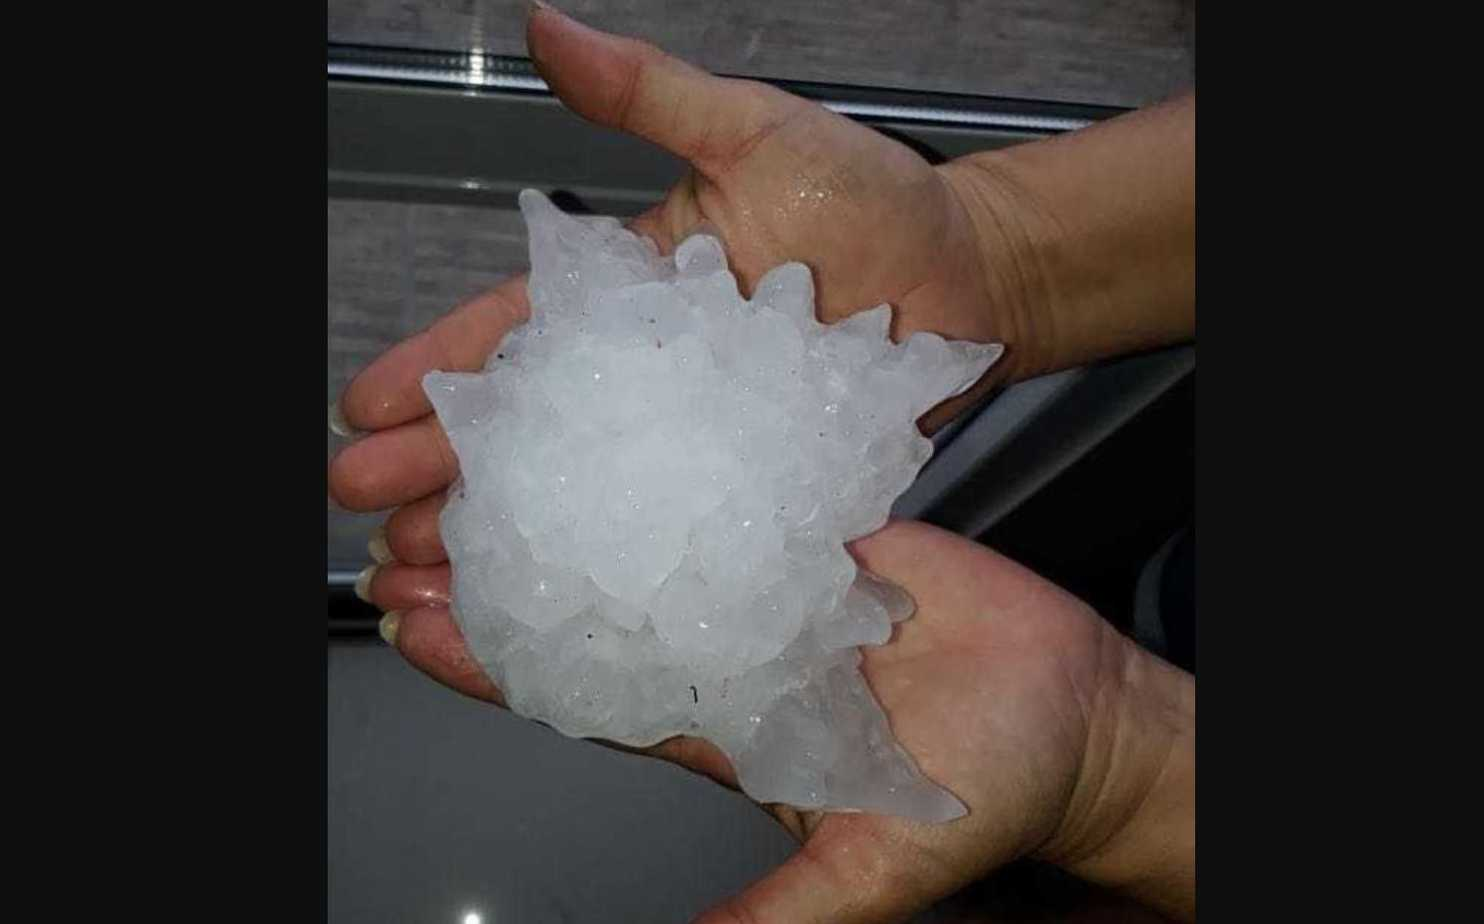 Giant hail pummeled an Argentine city Thursday, possibly a Southern Hemisphere record